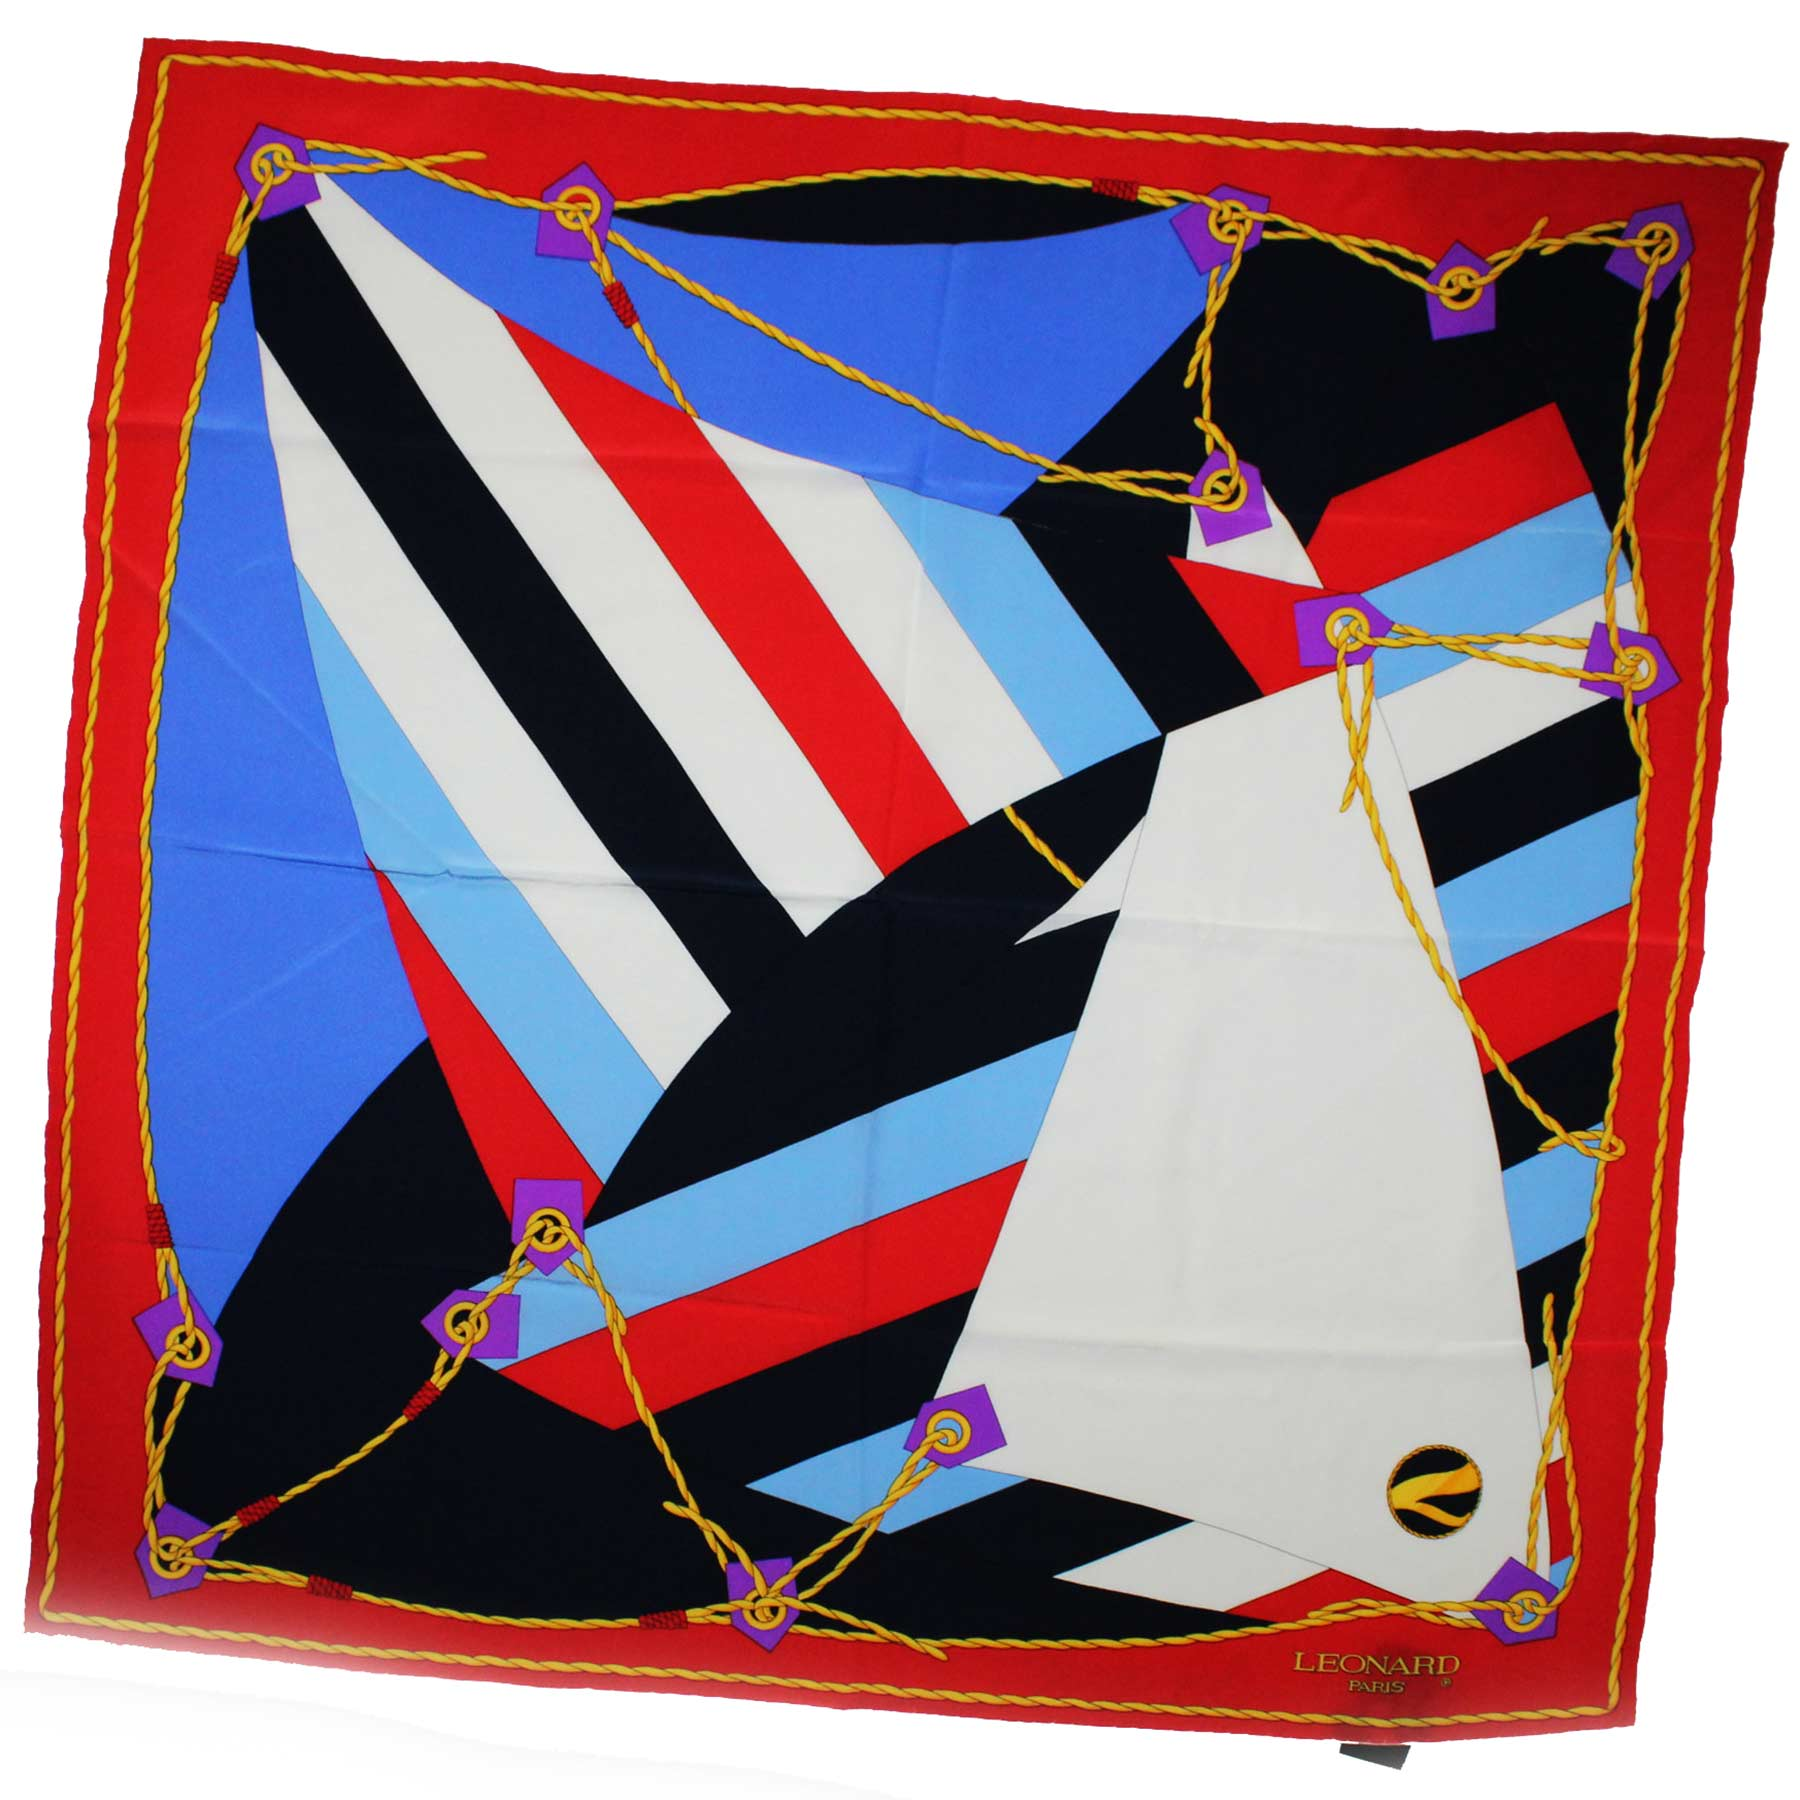 Leonard Paris Scarf Red White Gold Design - Large Square Silk Scarf Vintage SALE